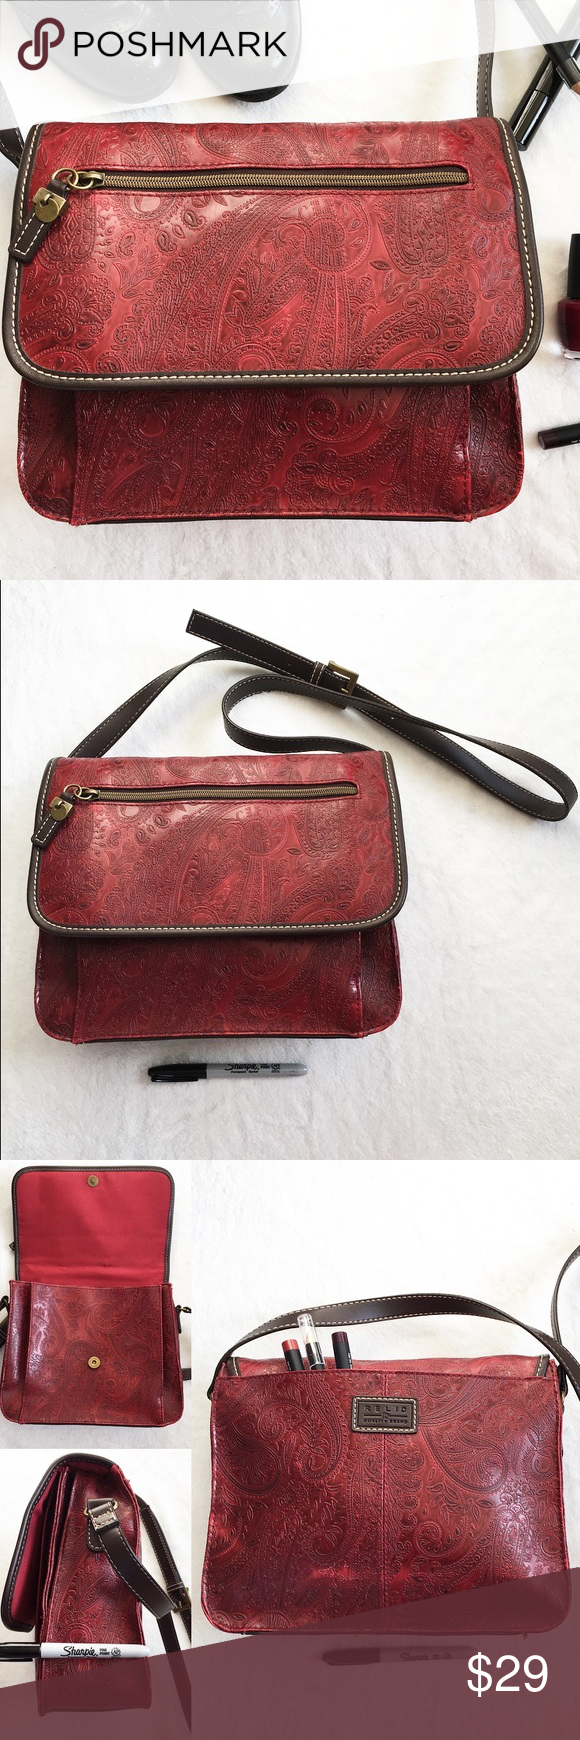 Red Paisley Relic Medium Large Crossbody Purse Bag  Stunning authentic all season Relic Quality Brand bag   Has a deep red / burgundy embossed paisley swirl pattern   Medium size    Over the shoulder / cross body, has an adjustable belt strap    Has a lot of storage compartments. Has on back of the purse, one in the front, three open pockets inside and one zippered pouch in the largest pocket   Has some wearing of color, seen in pictures     Sharpie is to show scale Approximate measurements…